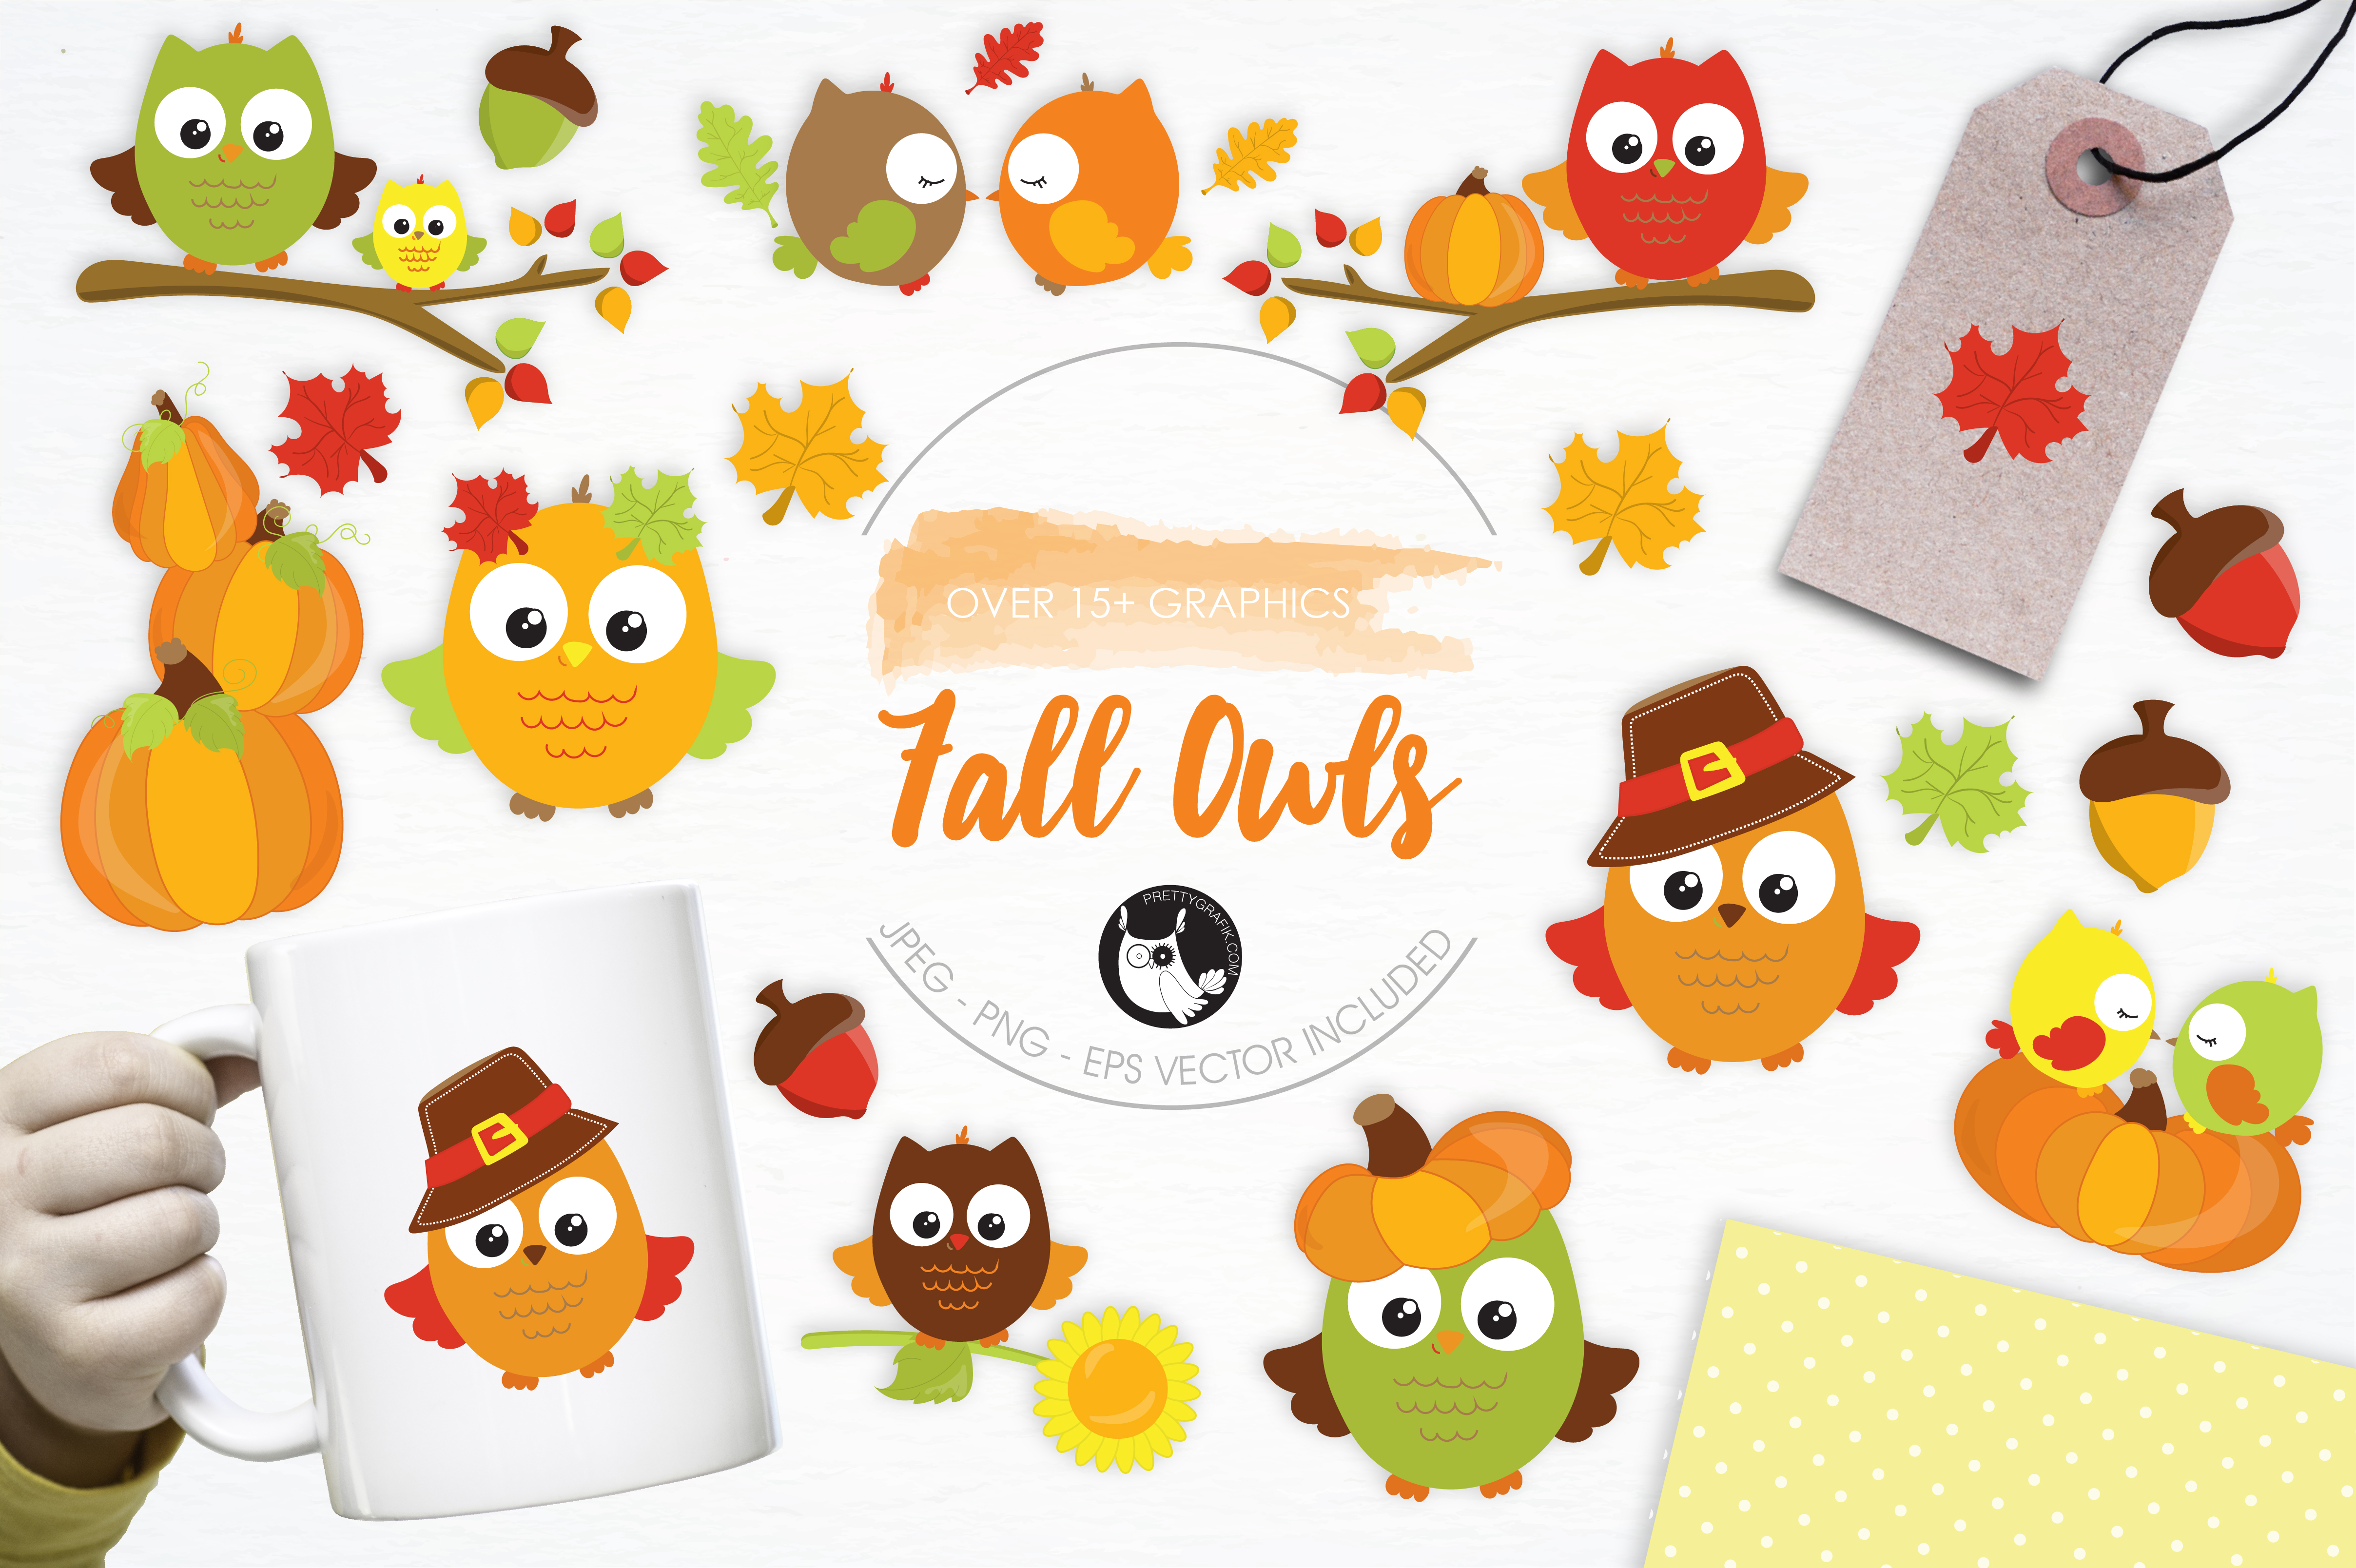 Download Free Fall Owls Graphic By Prettygrafik Creative Fabrica for Cricut Explore, Silhouette and other cutting machines.